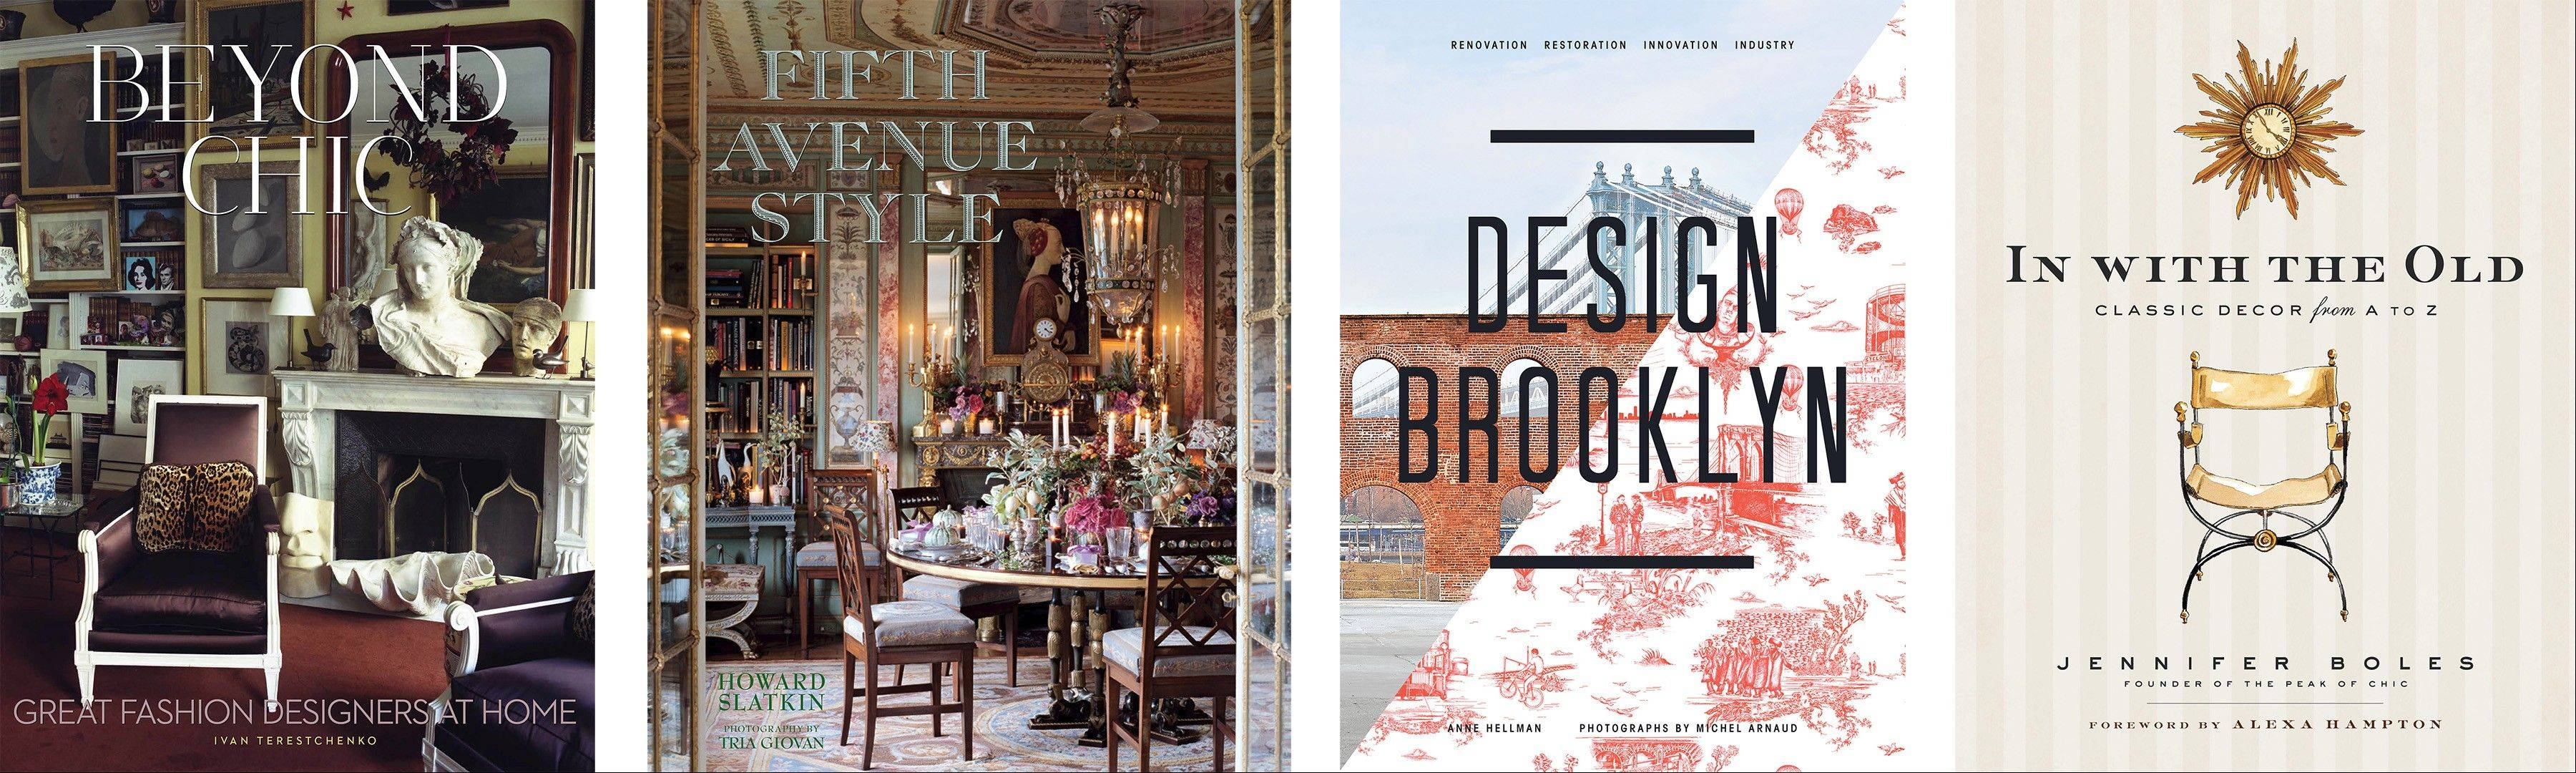 "Interior design books to adorn your coffee table: left to right, ""Beyond Chic: Great Fashion Designers at Home,"" Fifth Avenue Style,"" ""Design Brooklyn: Renovation, Restoration, Innovation, Industry""; and ""In With the Old: Classic D�cor from A to Z."""